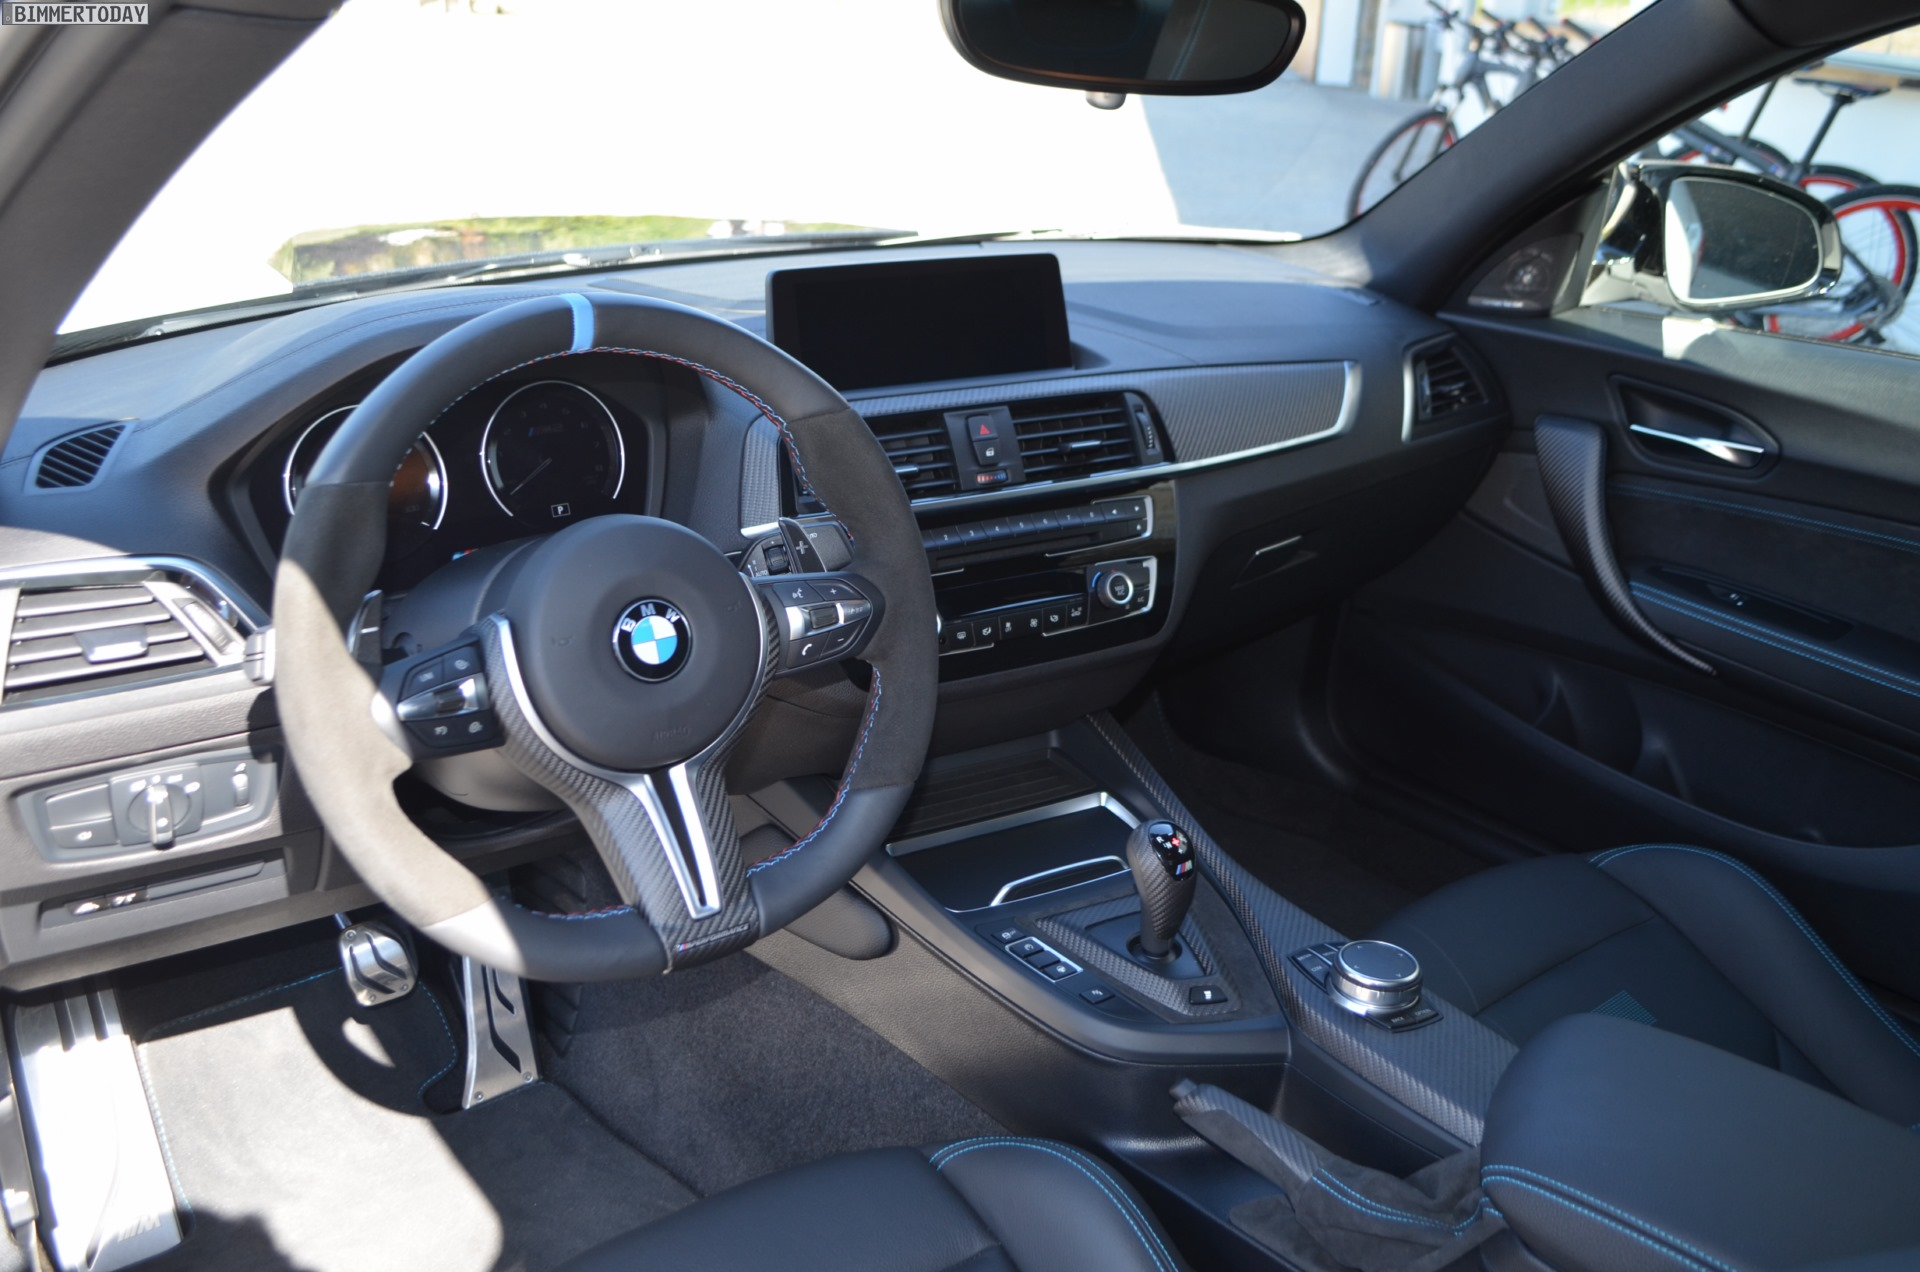 the carbon fiber program continues inside the bmw m2 competition not only the covers for the center console and gear selector are made of carbon fiber